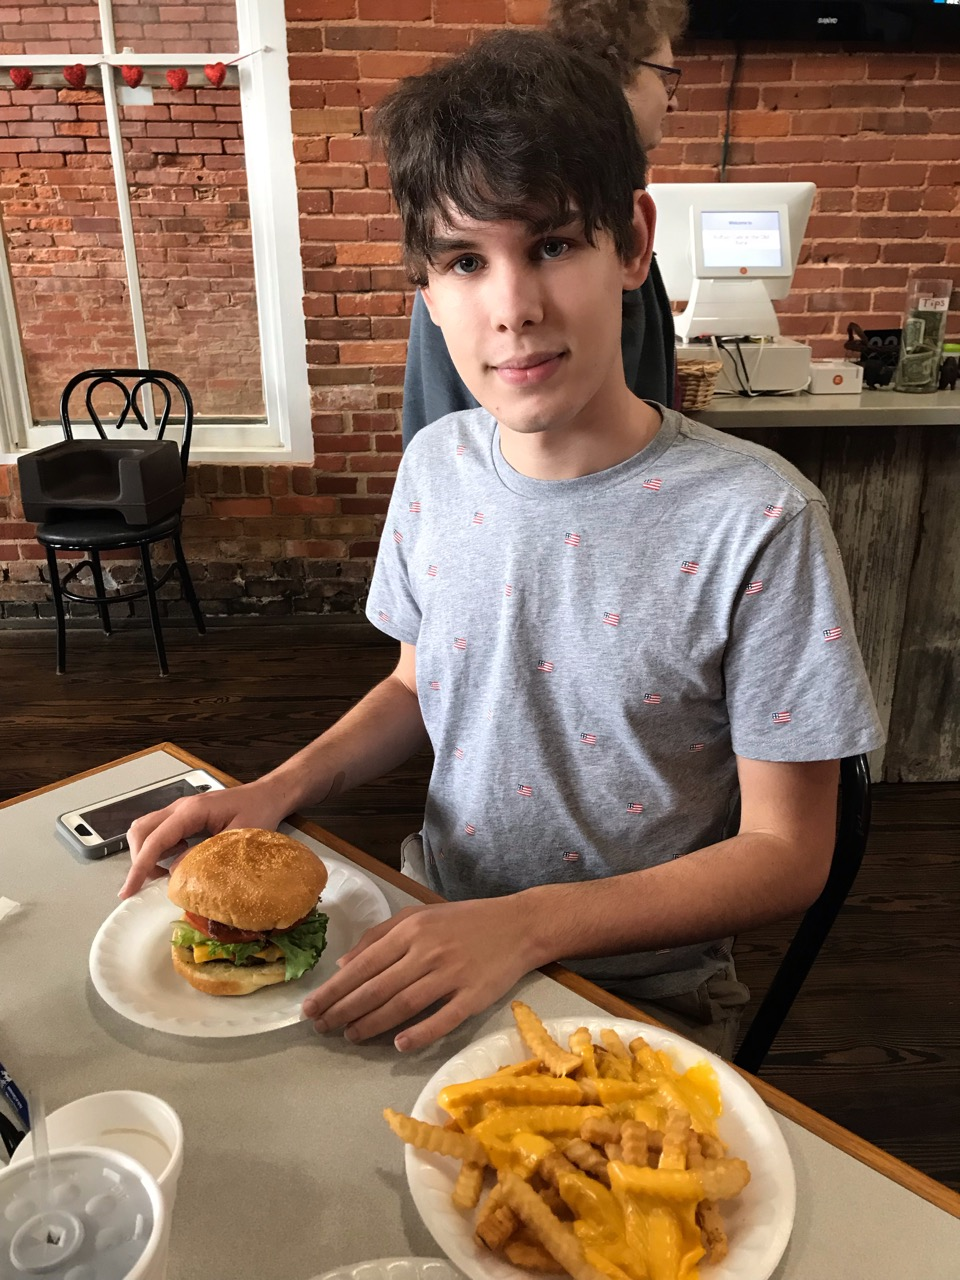 The Buffalo Cafe was even recommended by the park rangers at the Plains High School as the place to go for lunch. I admit - it was a very yummy bacon cheeseburger - cheese fries not so much me - but Aidan loved them.